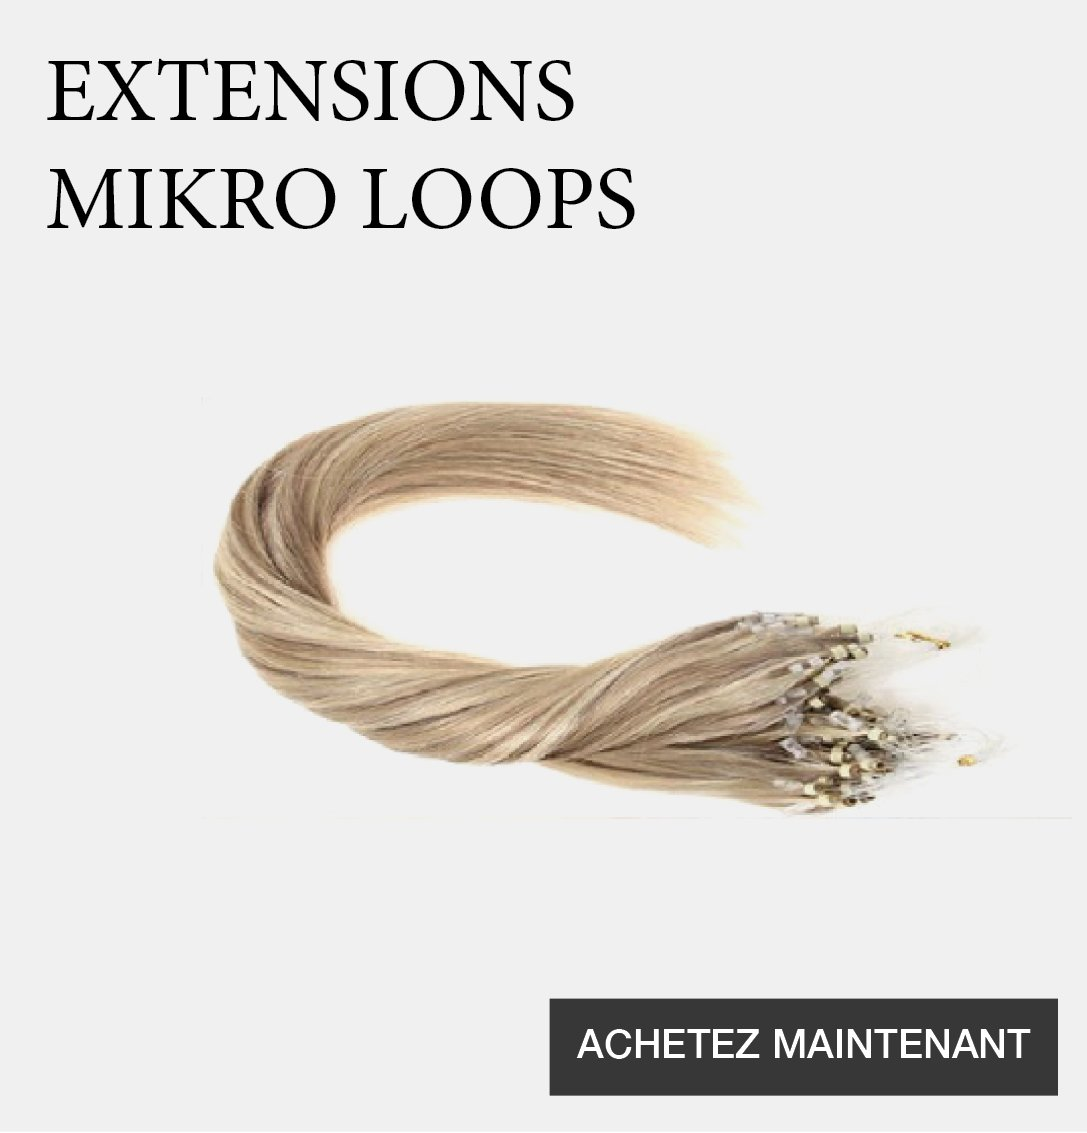 Extension mikro loops